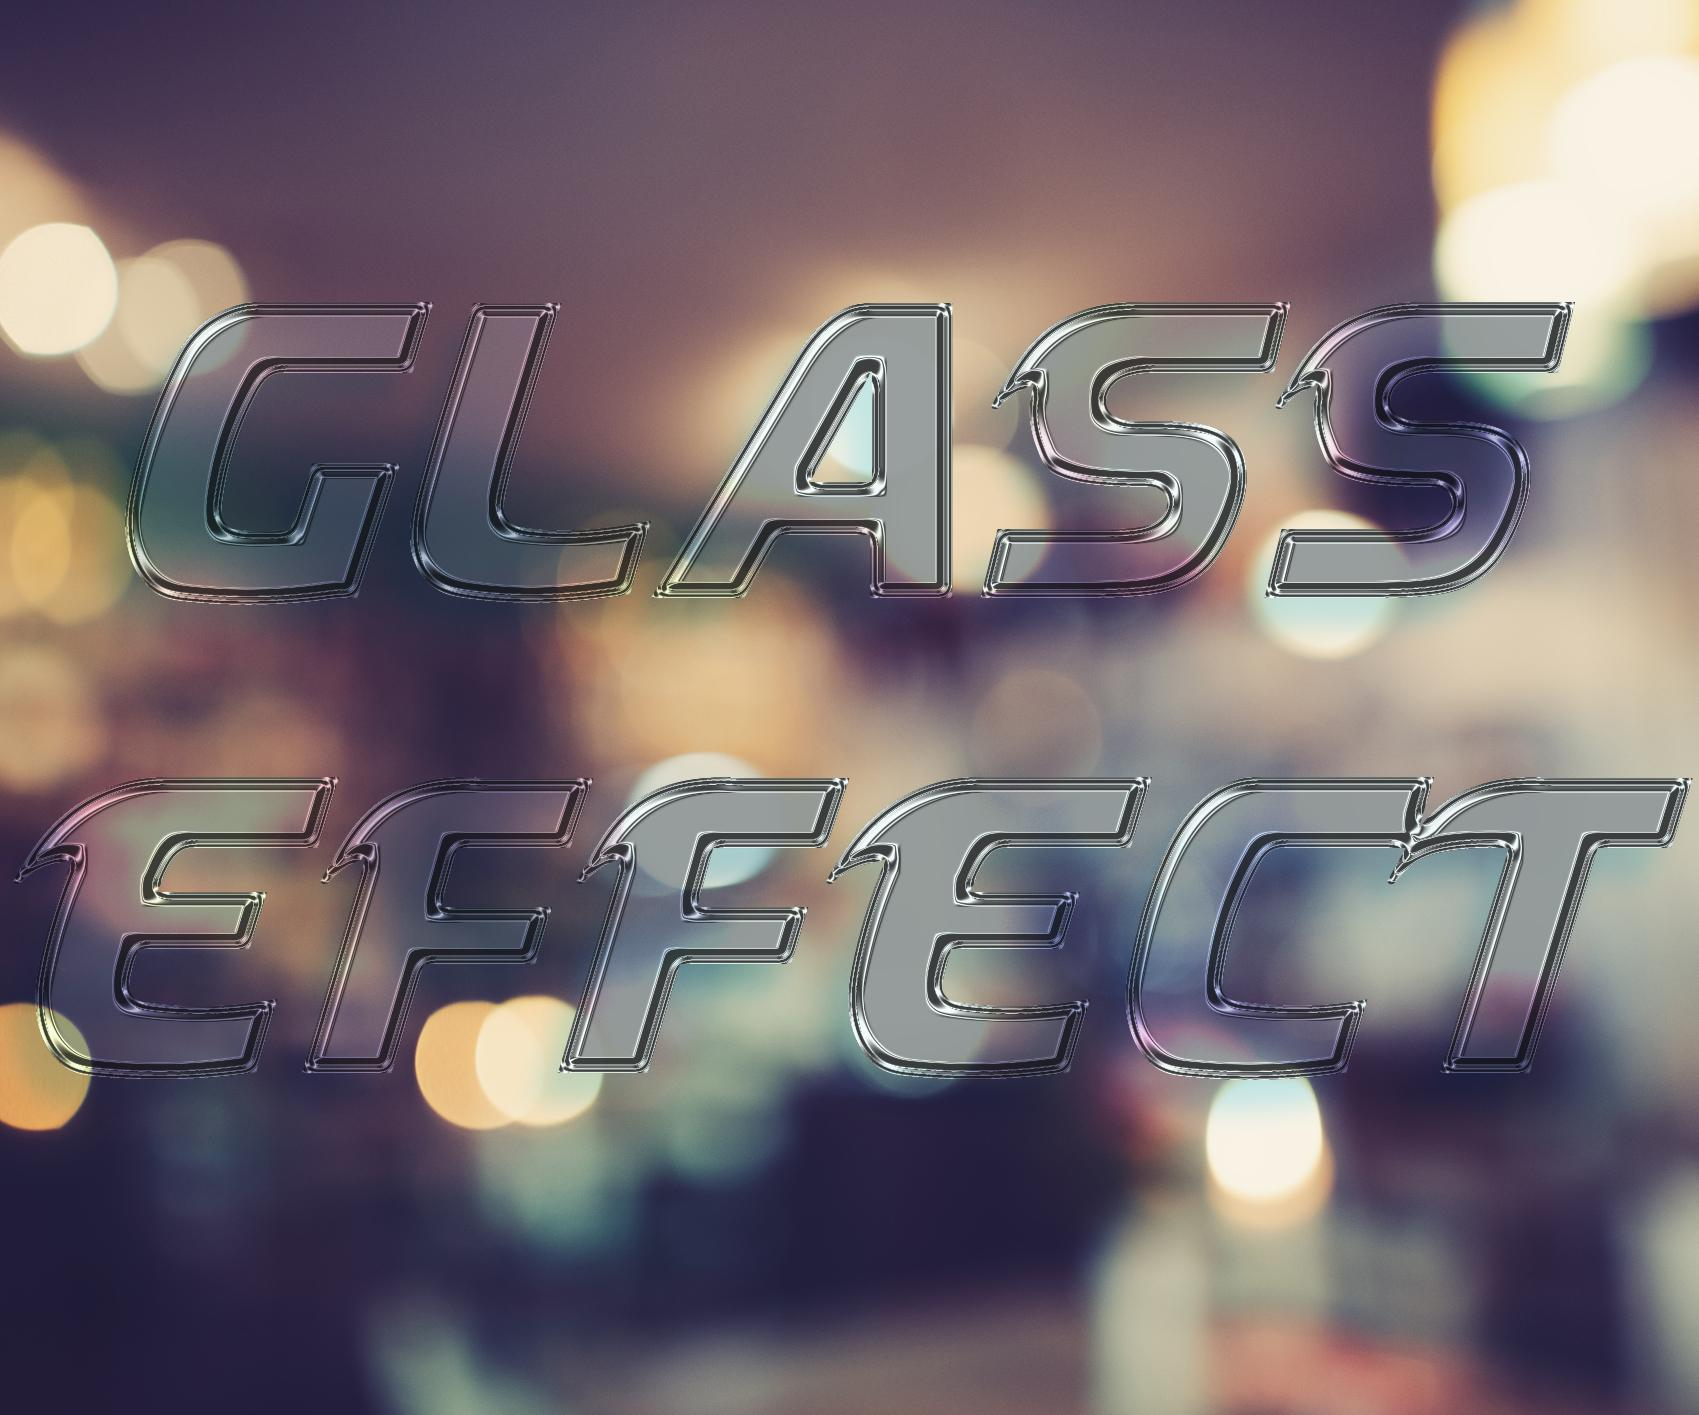 How to create a glass effect in Photoshop